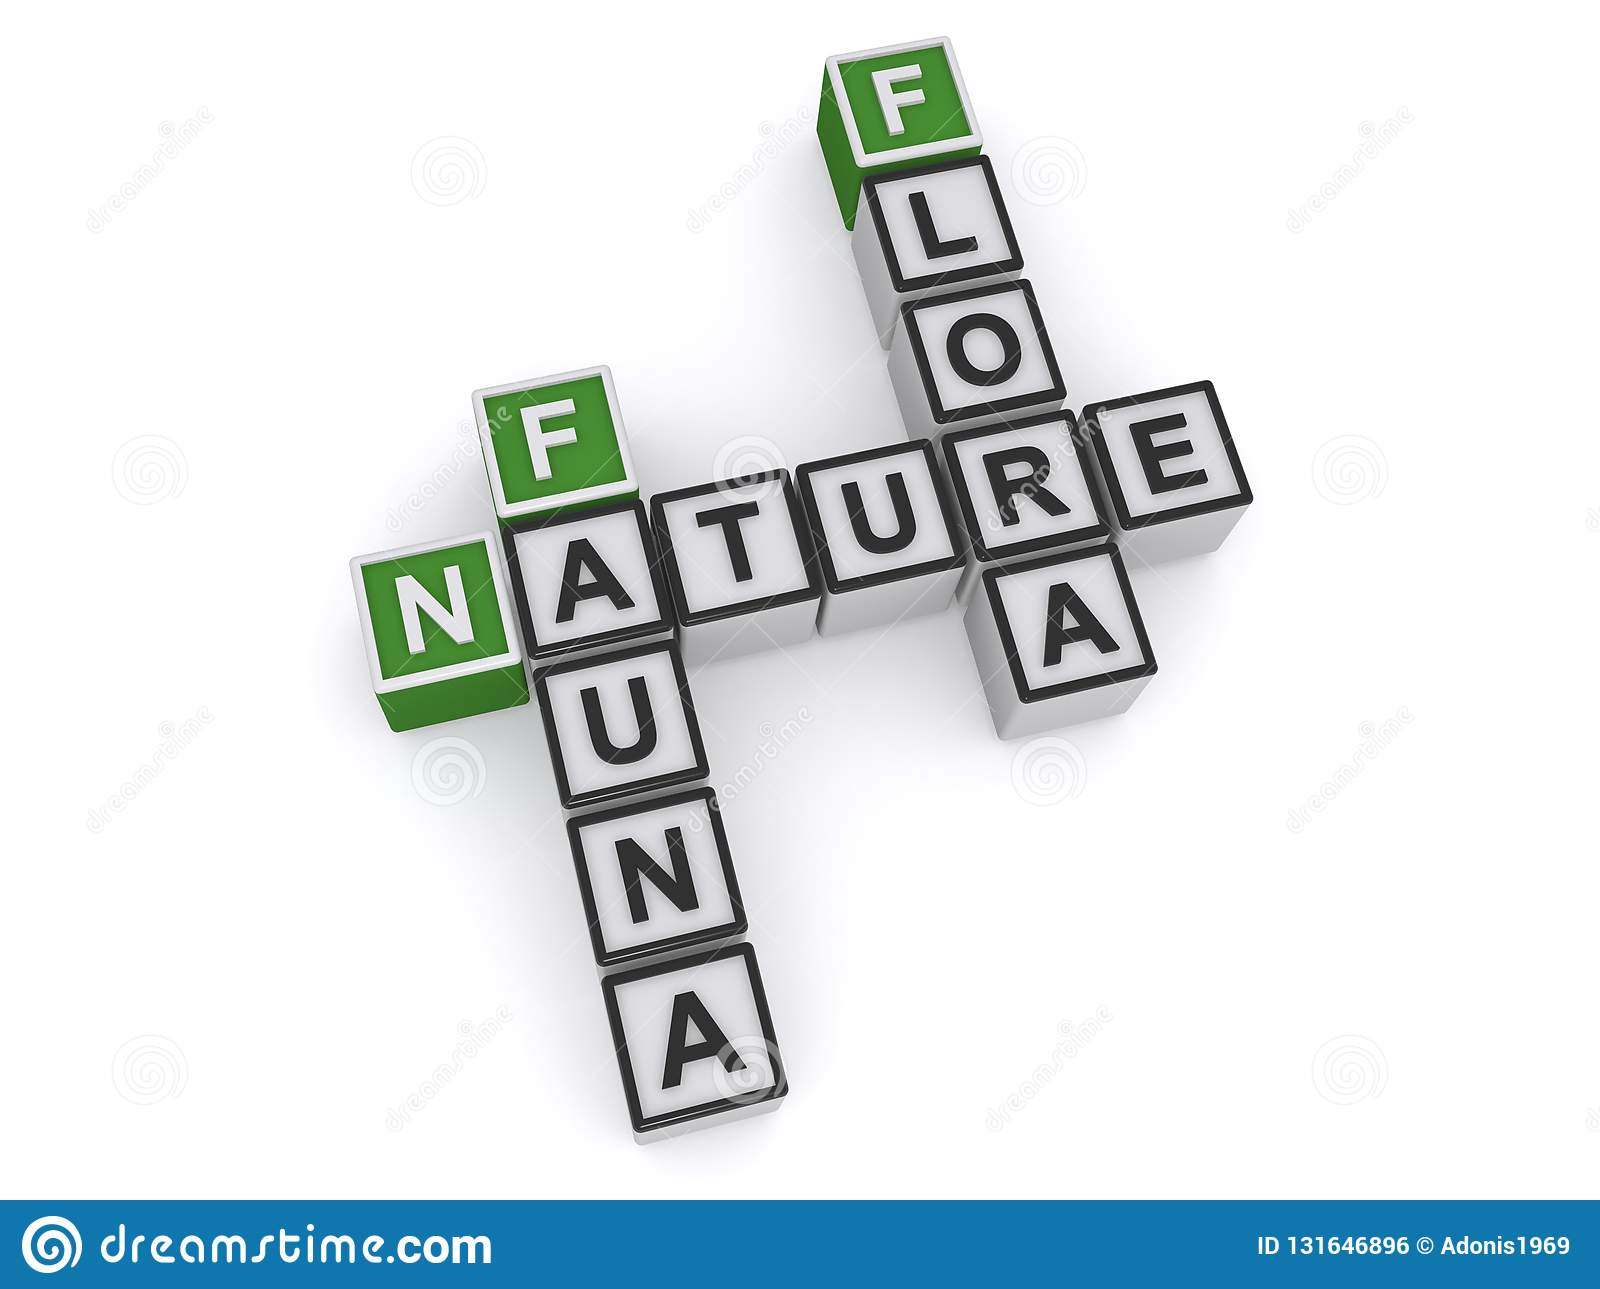 Puzzle Crossword Puzzles On Nature With Answers